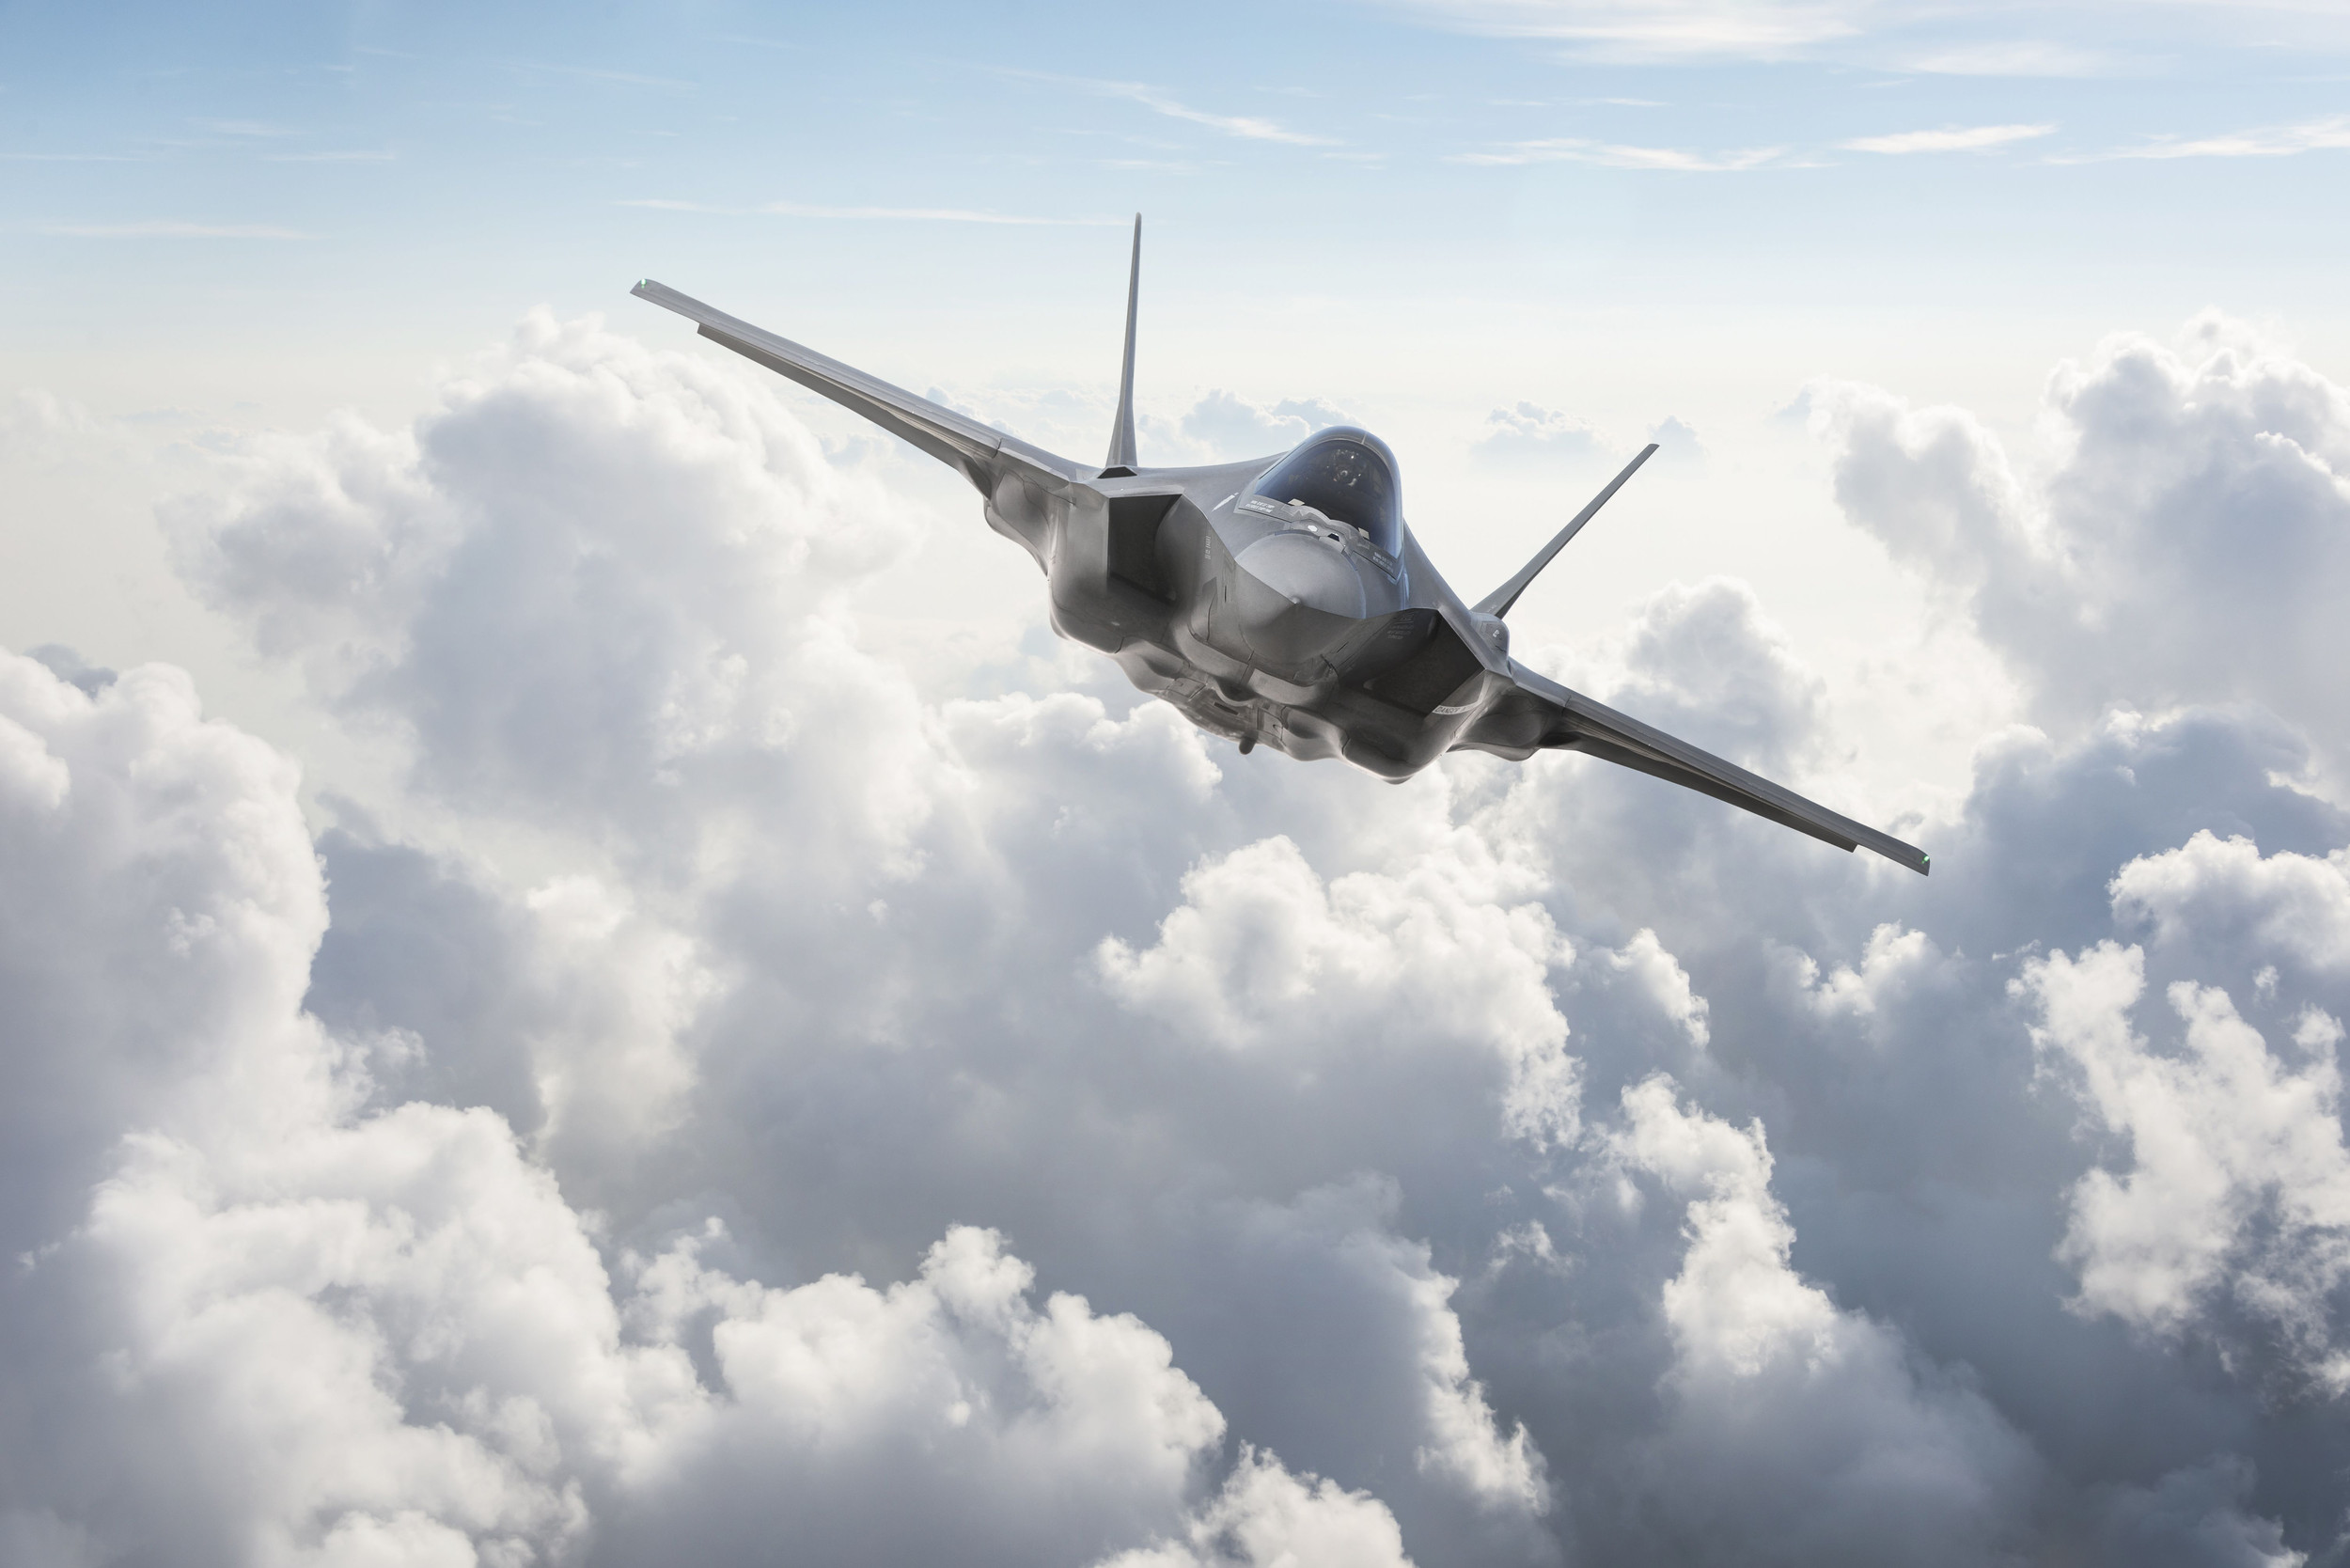 Poland To Buy At Least 32 F-35s As US Buying Spree Continues